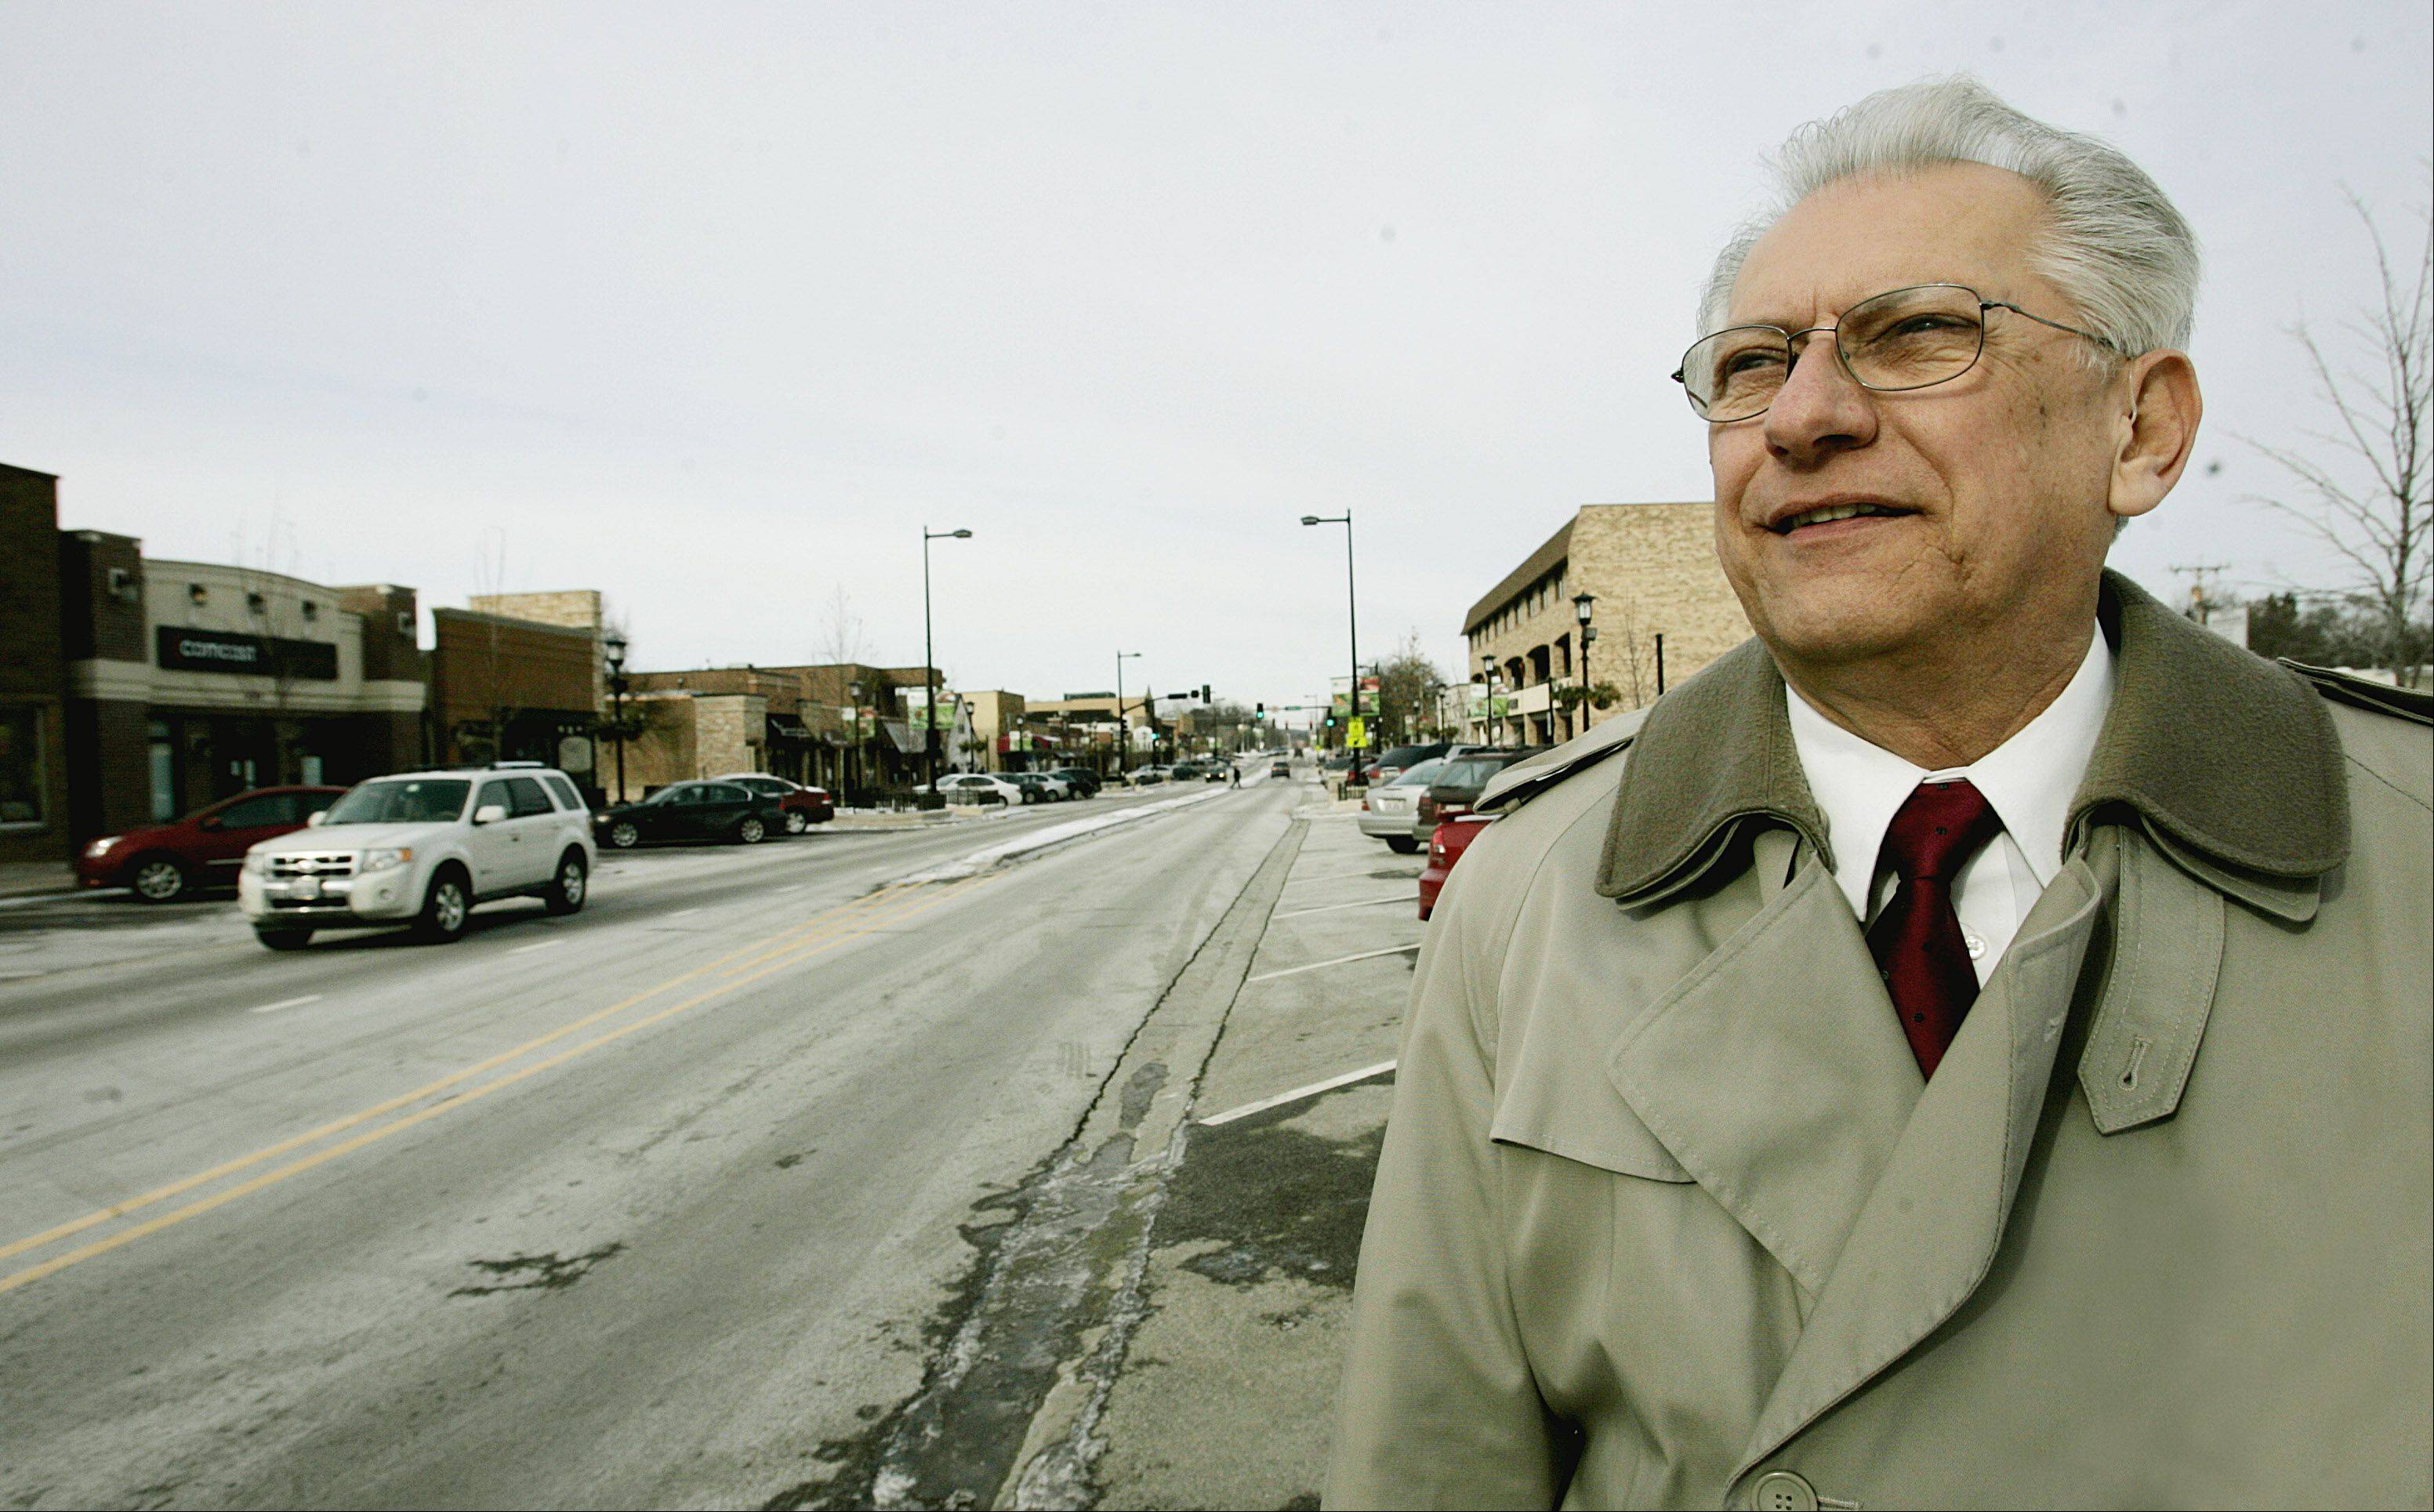 Lisle Mayor Joe Broda is singing the praises of the village's business development.